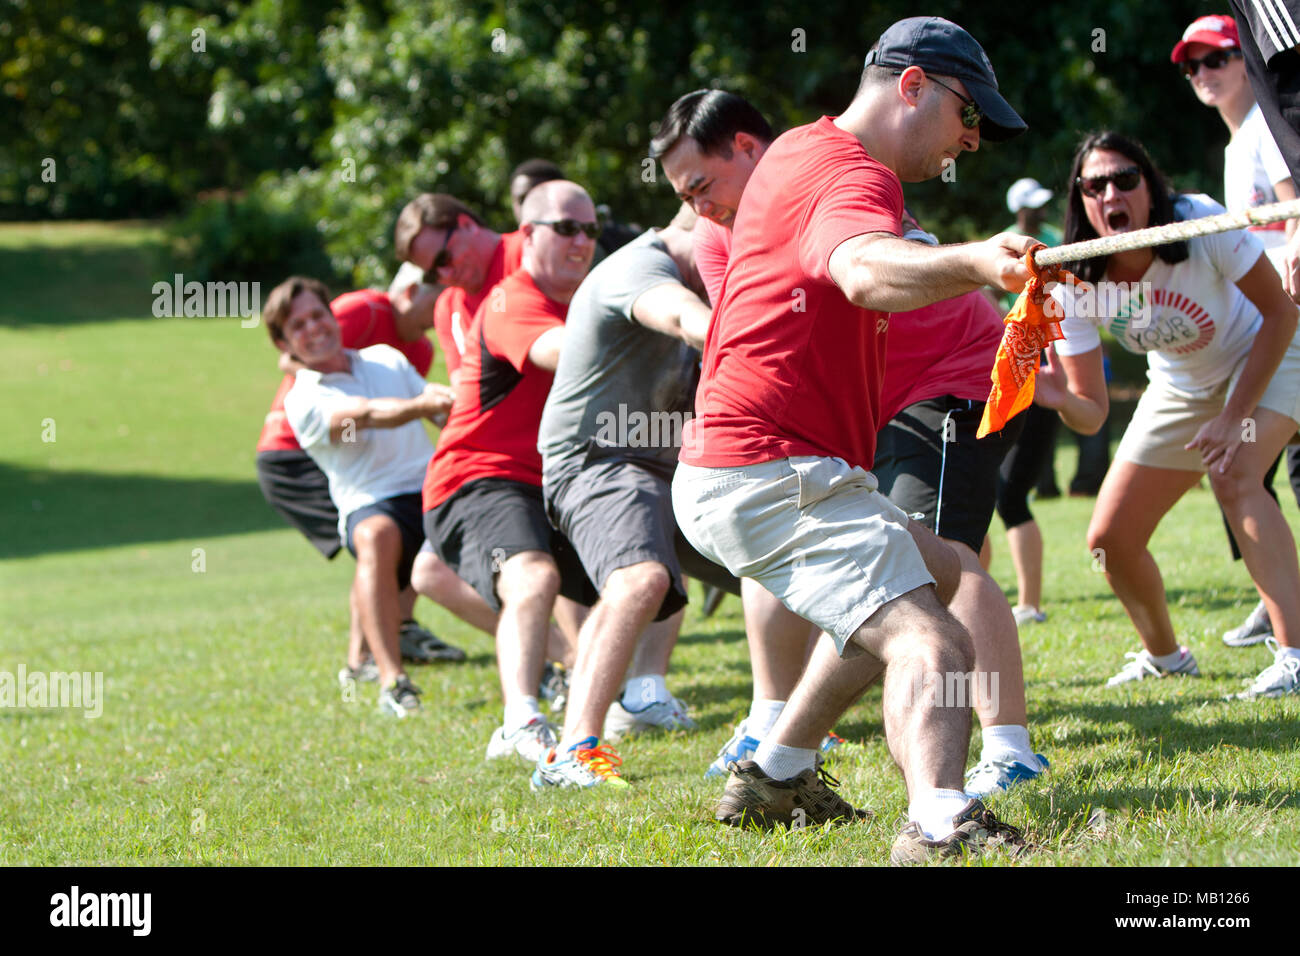 A team pulls in the tug-of-war competition at A Day For Kids, an event where adults play kids games for charity on September 7, 2013 in Atlanta, GA. - Stock Image